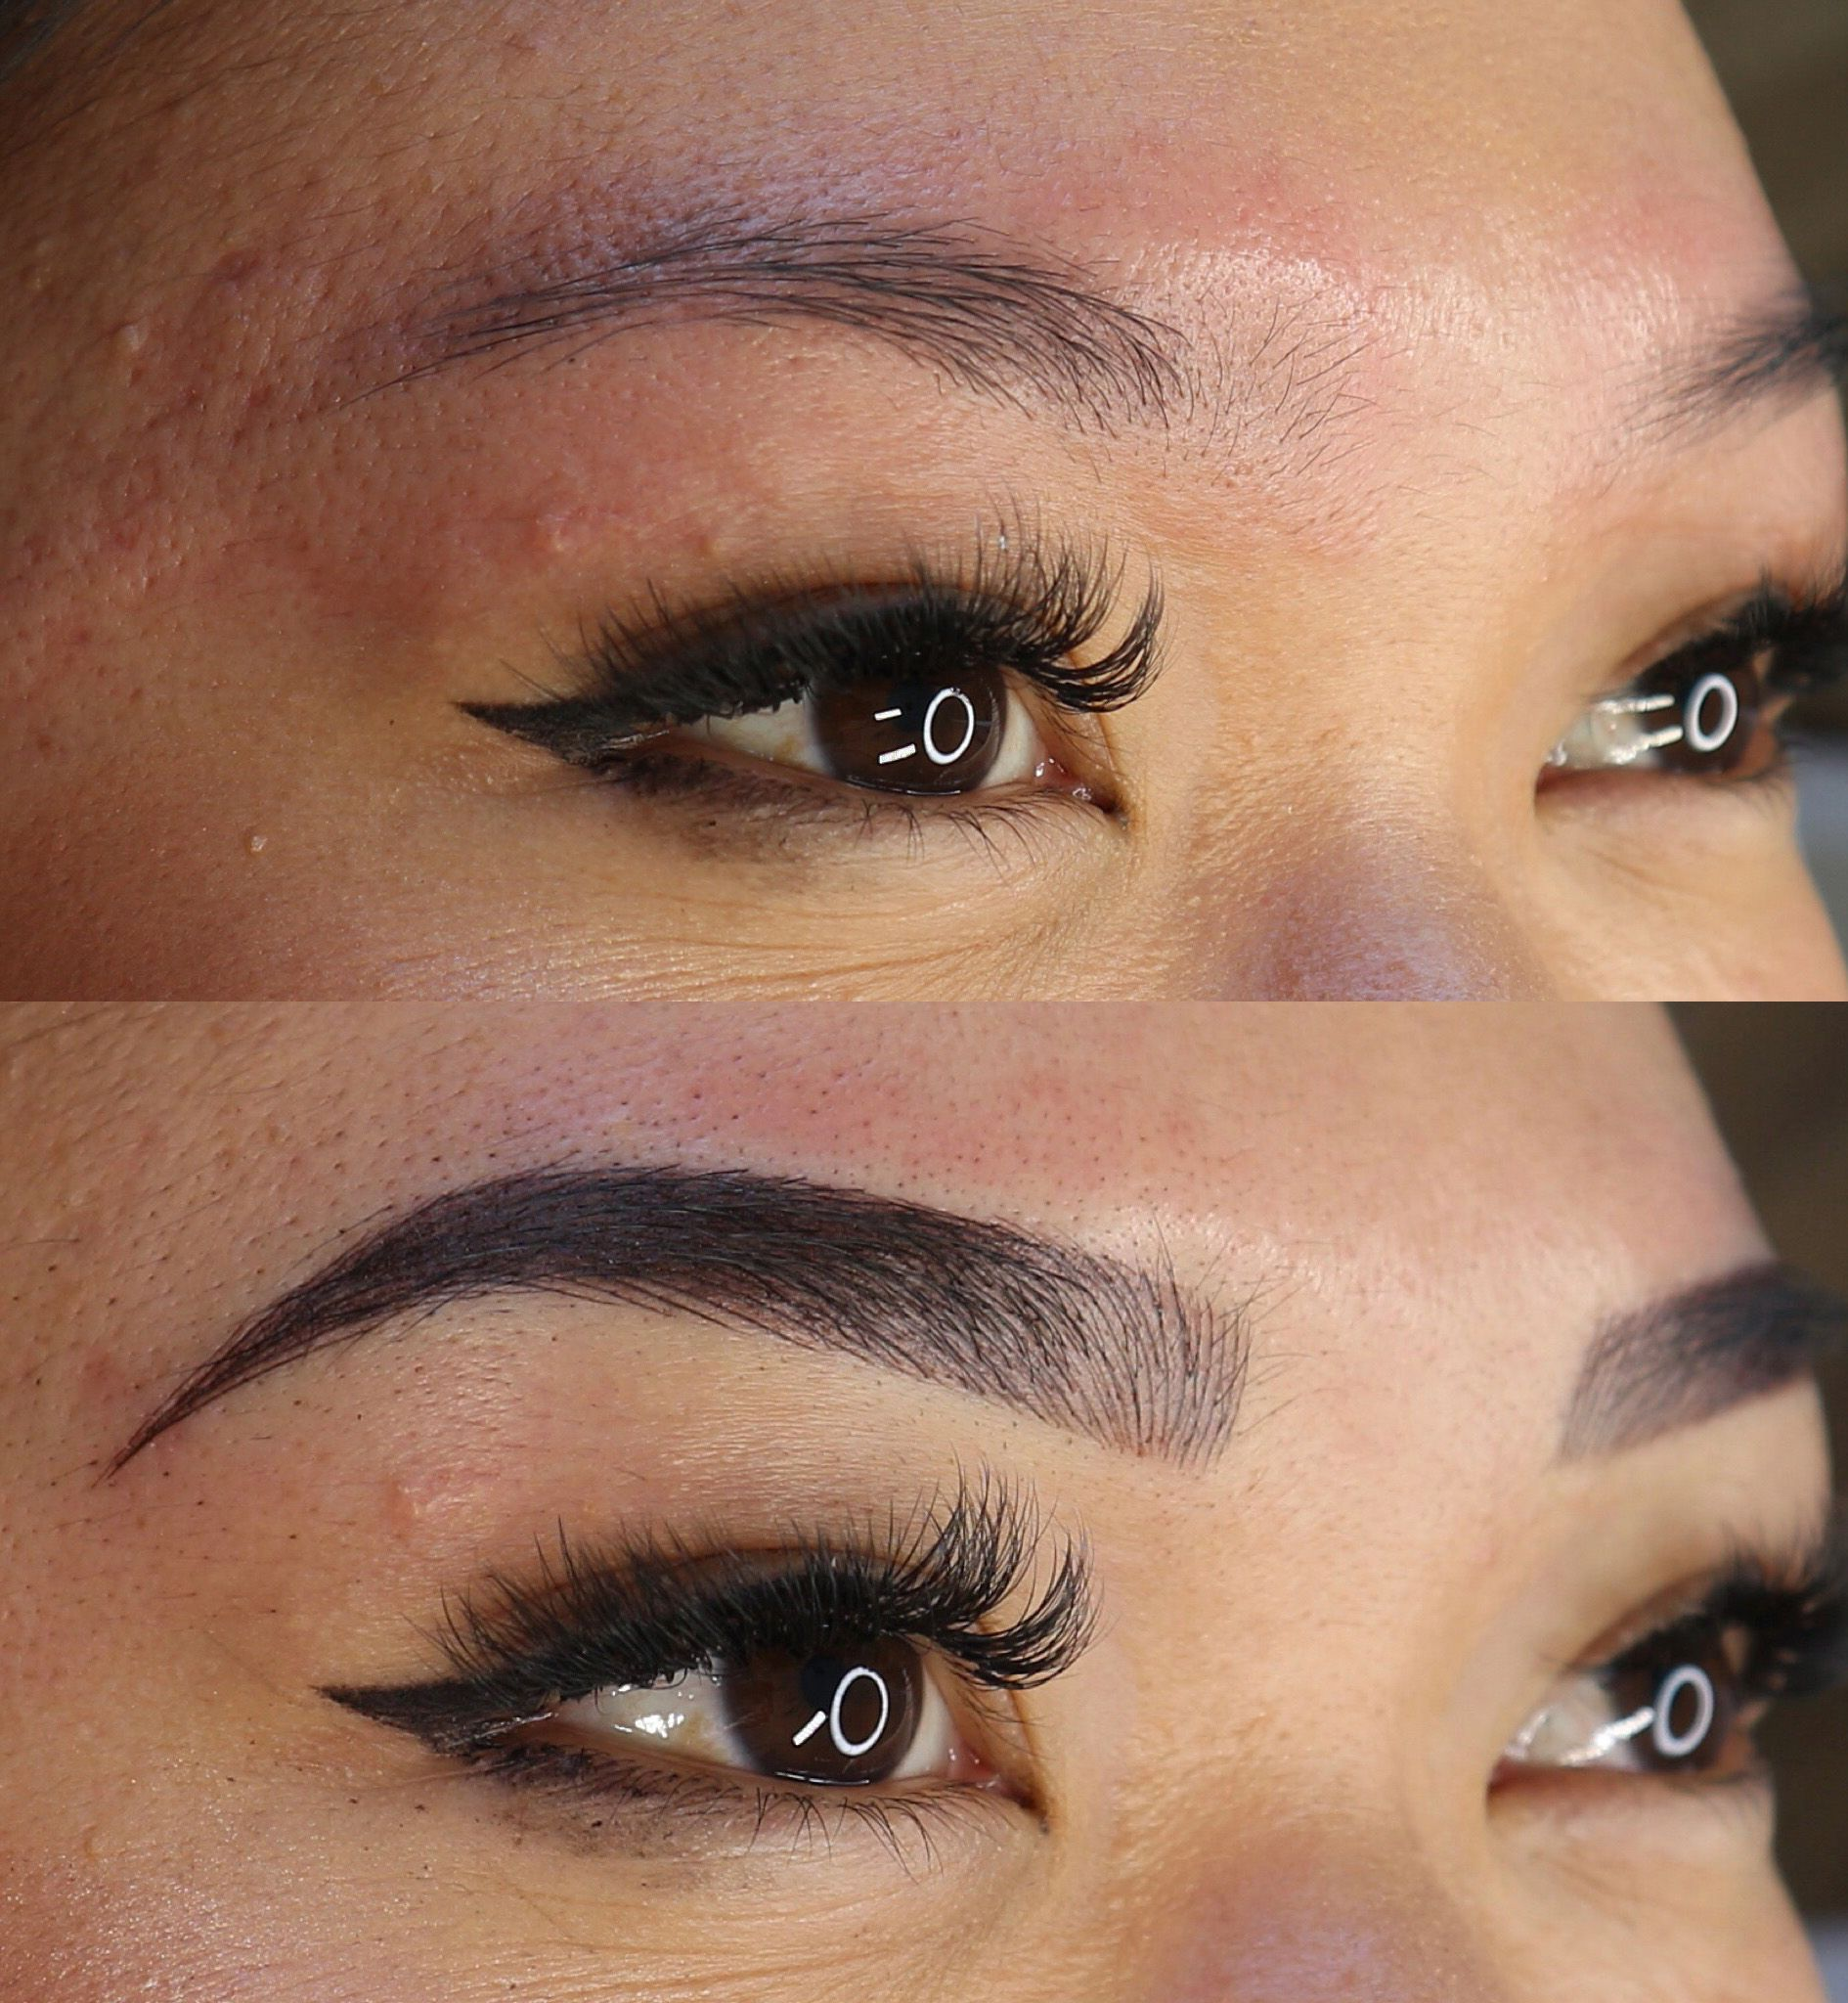 Before and after photo of combo brows from beautiful brow